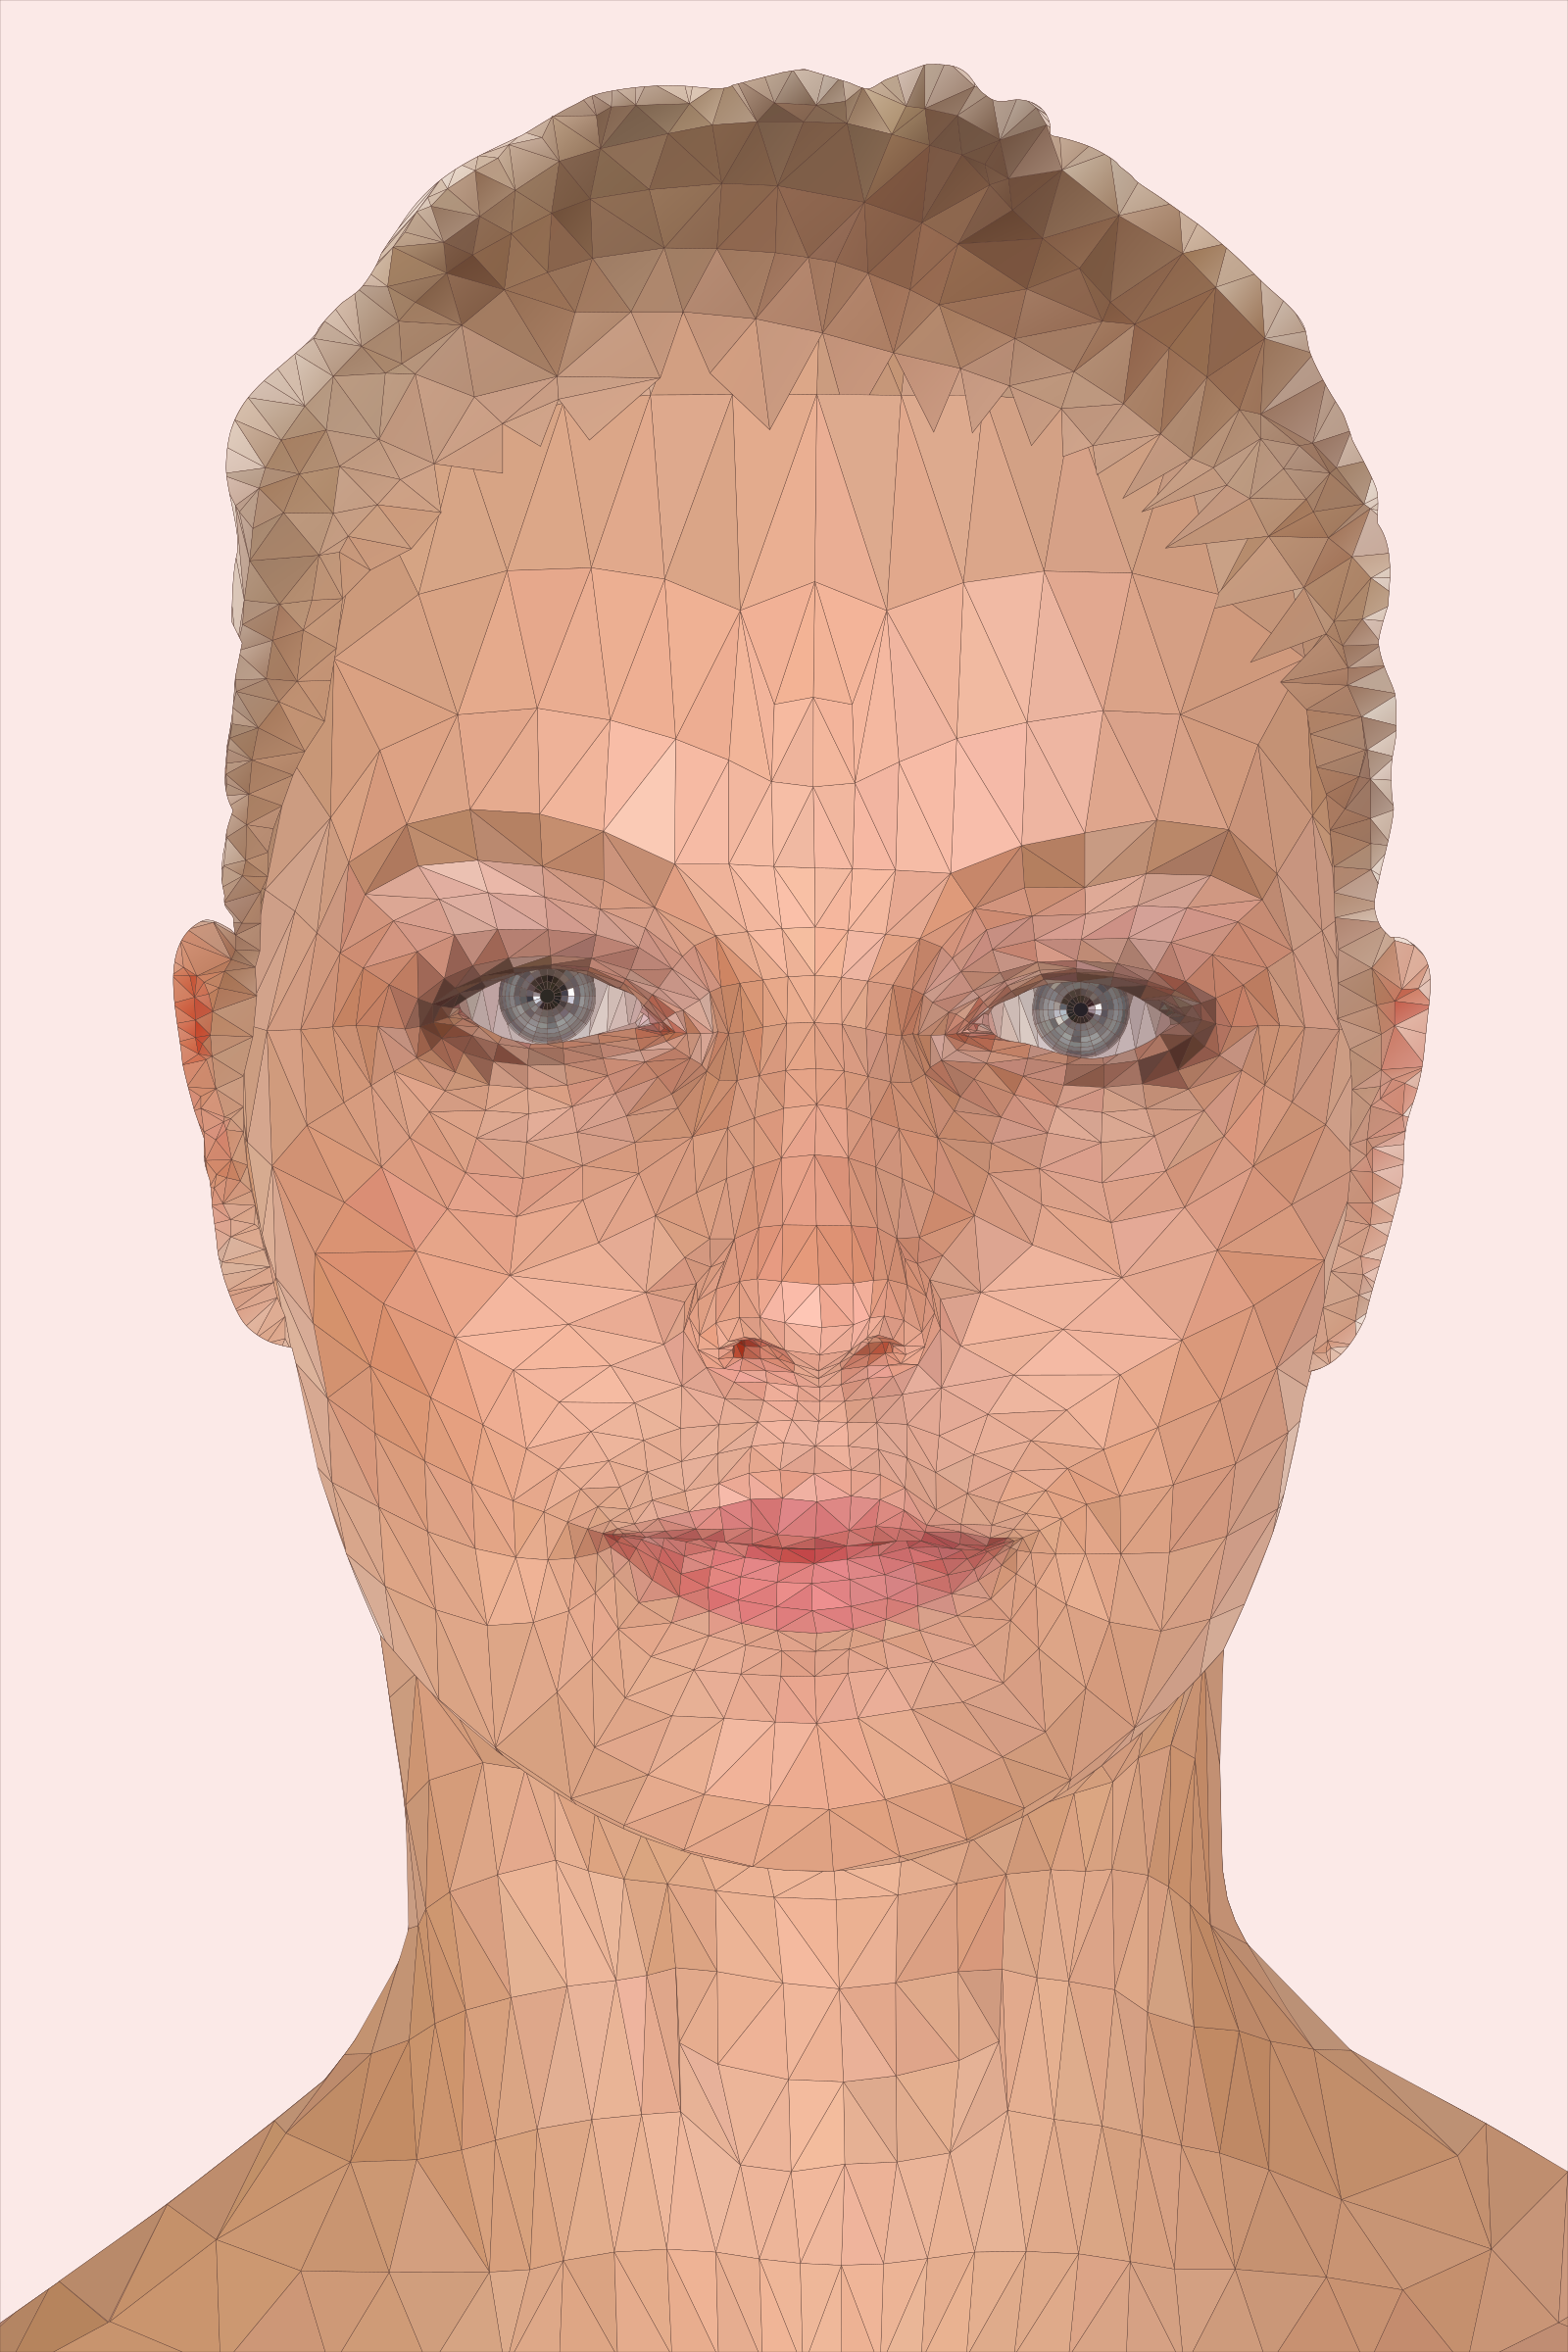 Woman Face Model - Low Poly Art by DG-RA